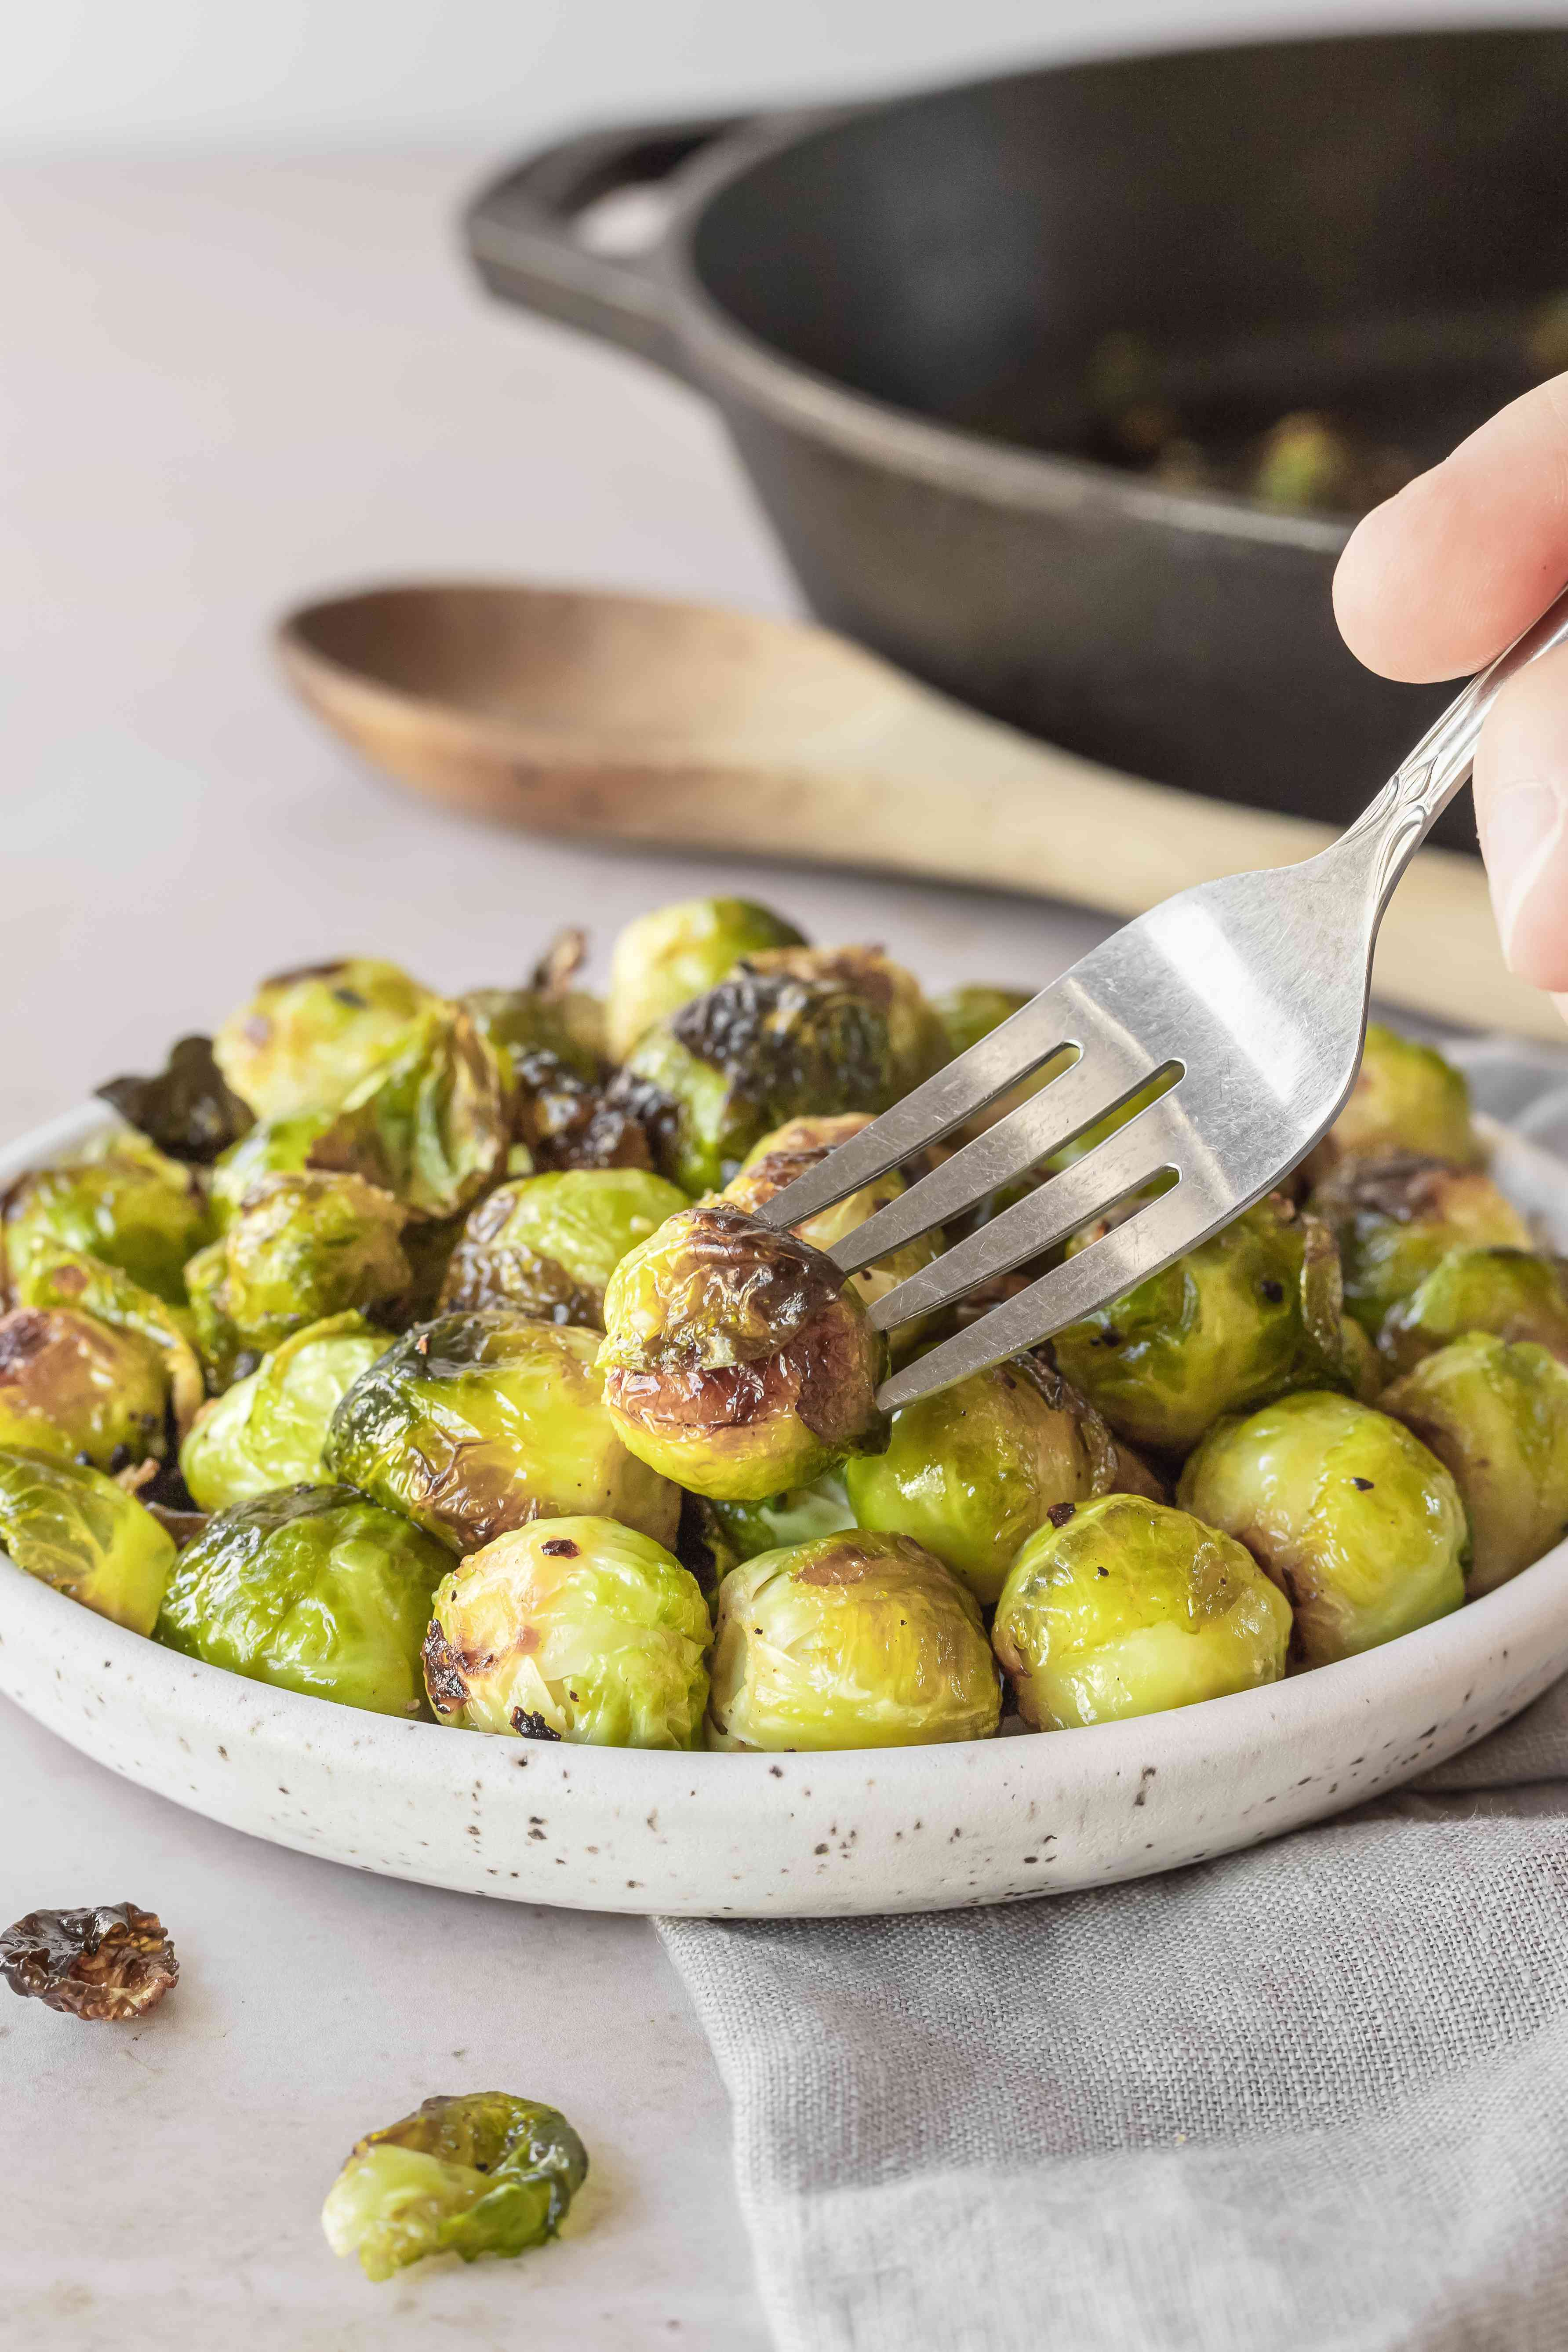 A fork picking up a roasted brussel sprout.